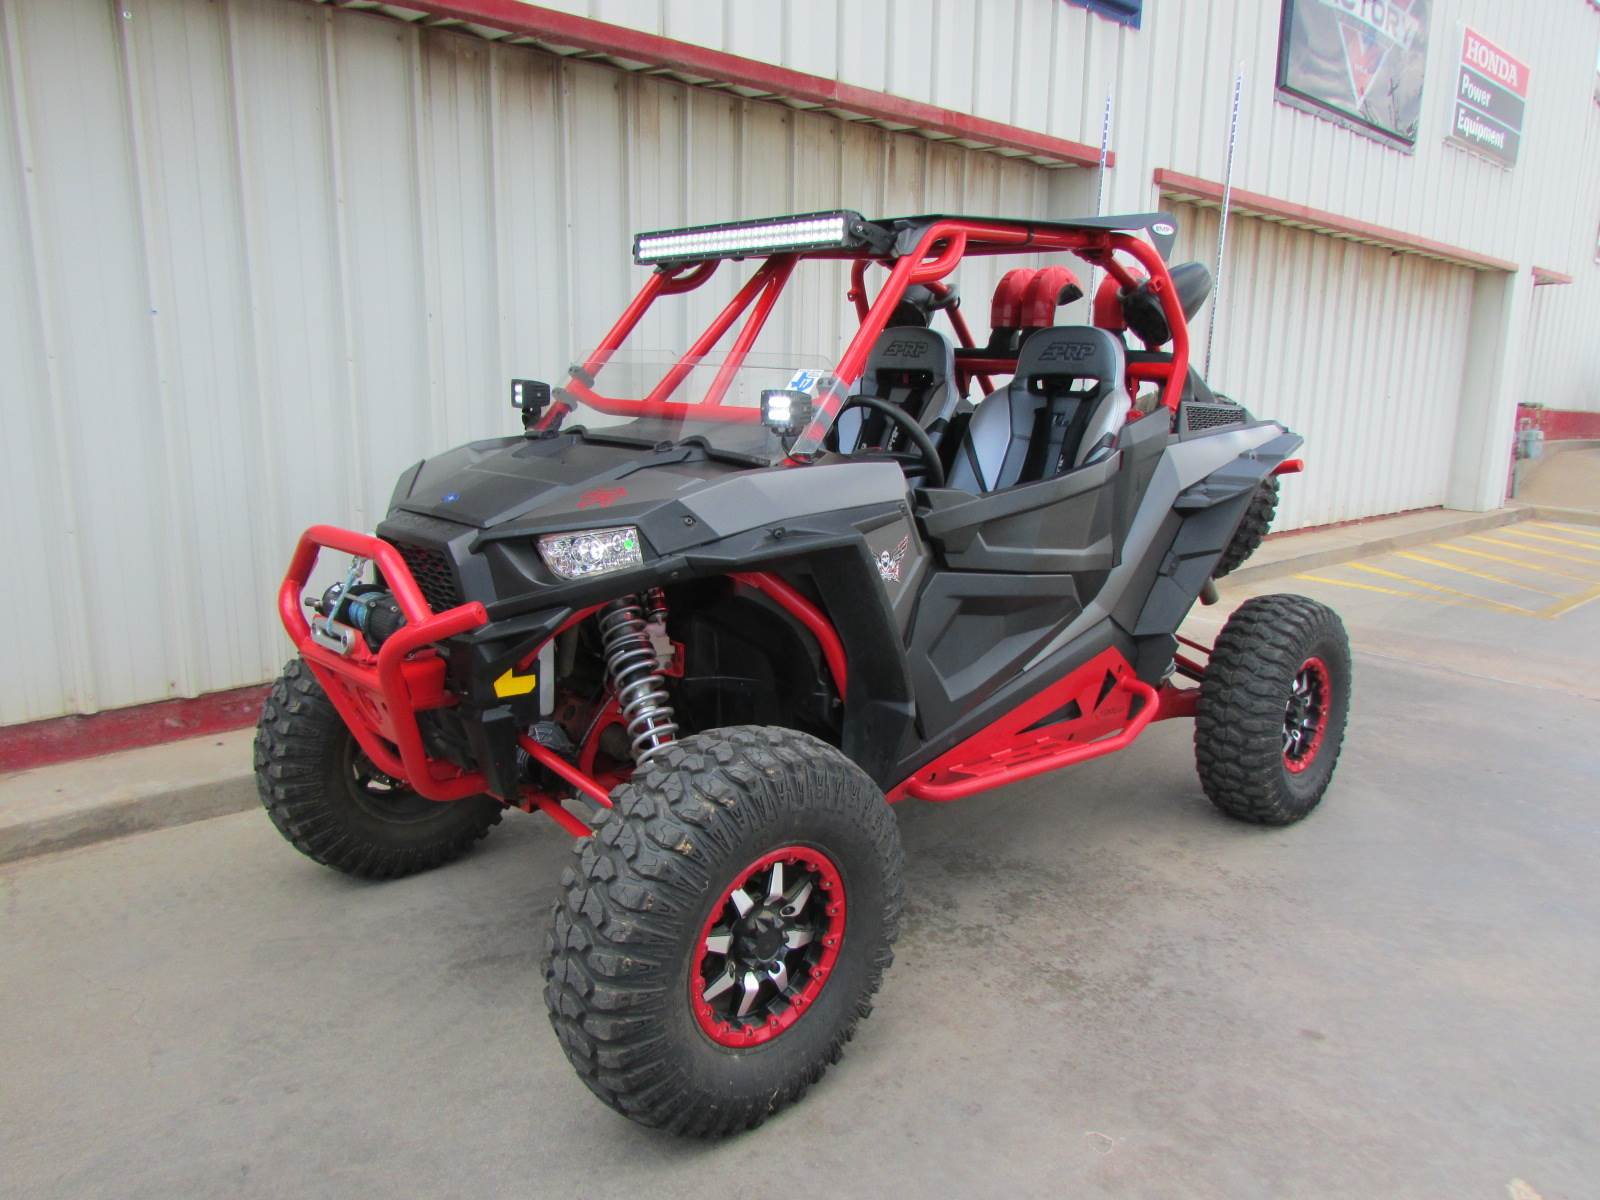 2016 Polaris Rzr Xp 1000 Eps High Lifter Edition In Wichita Falls Texas